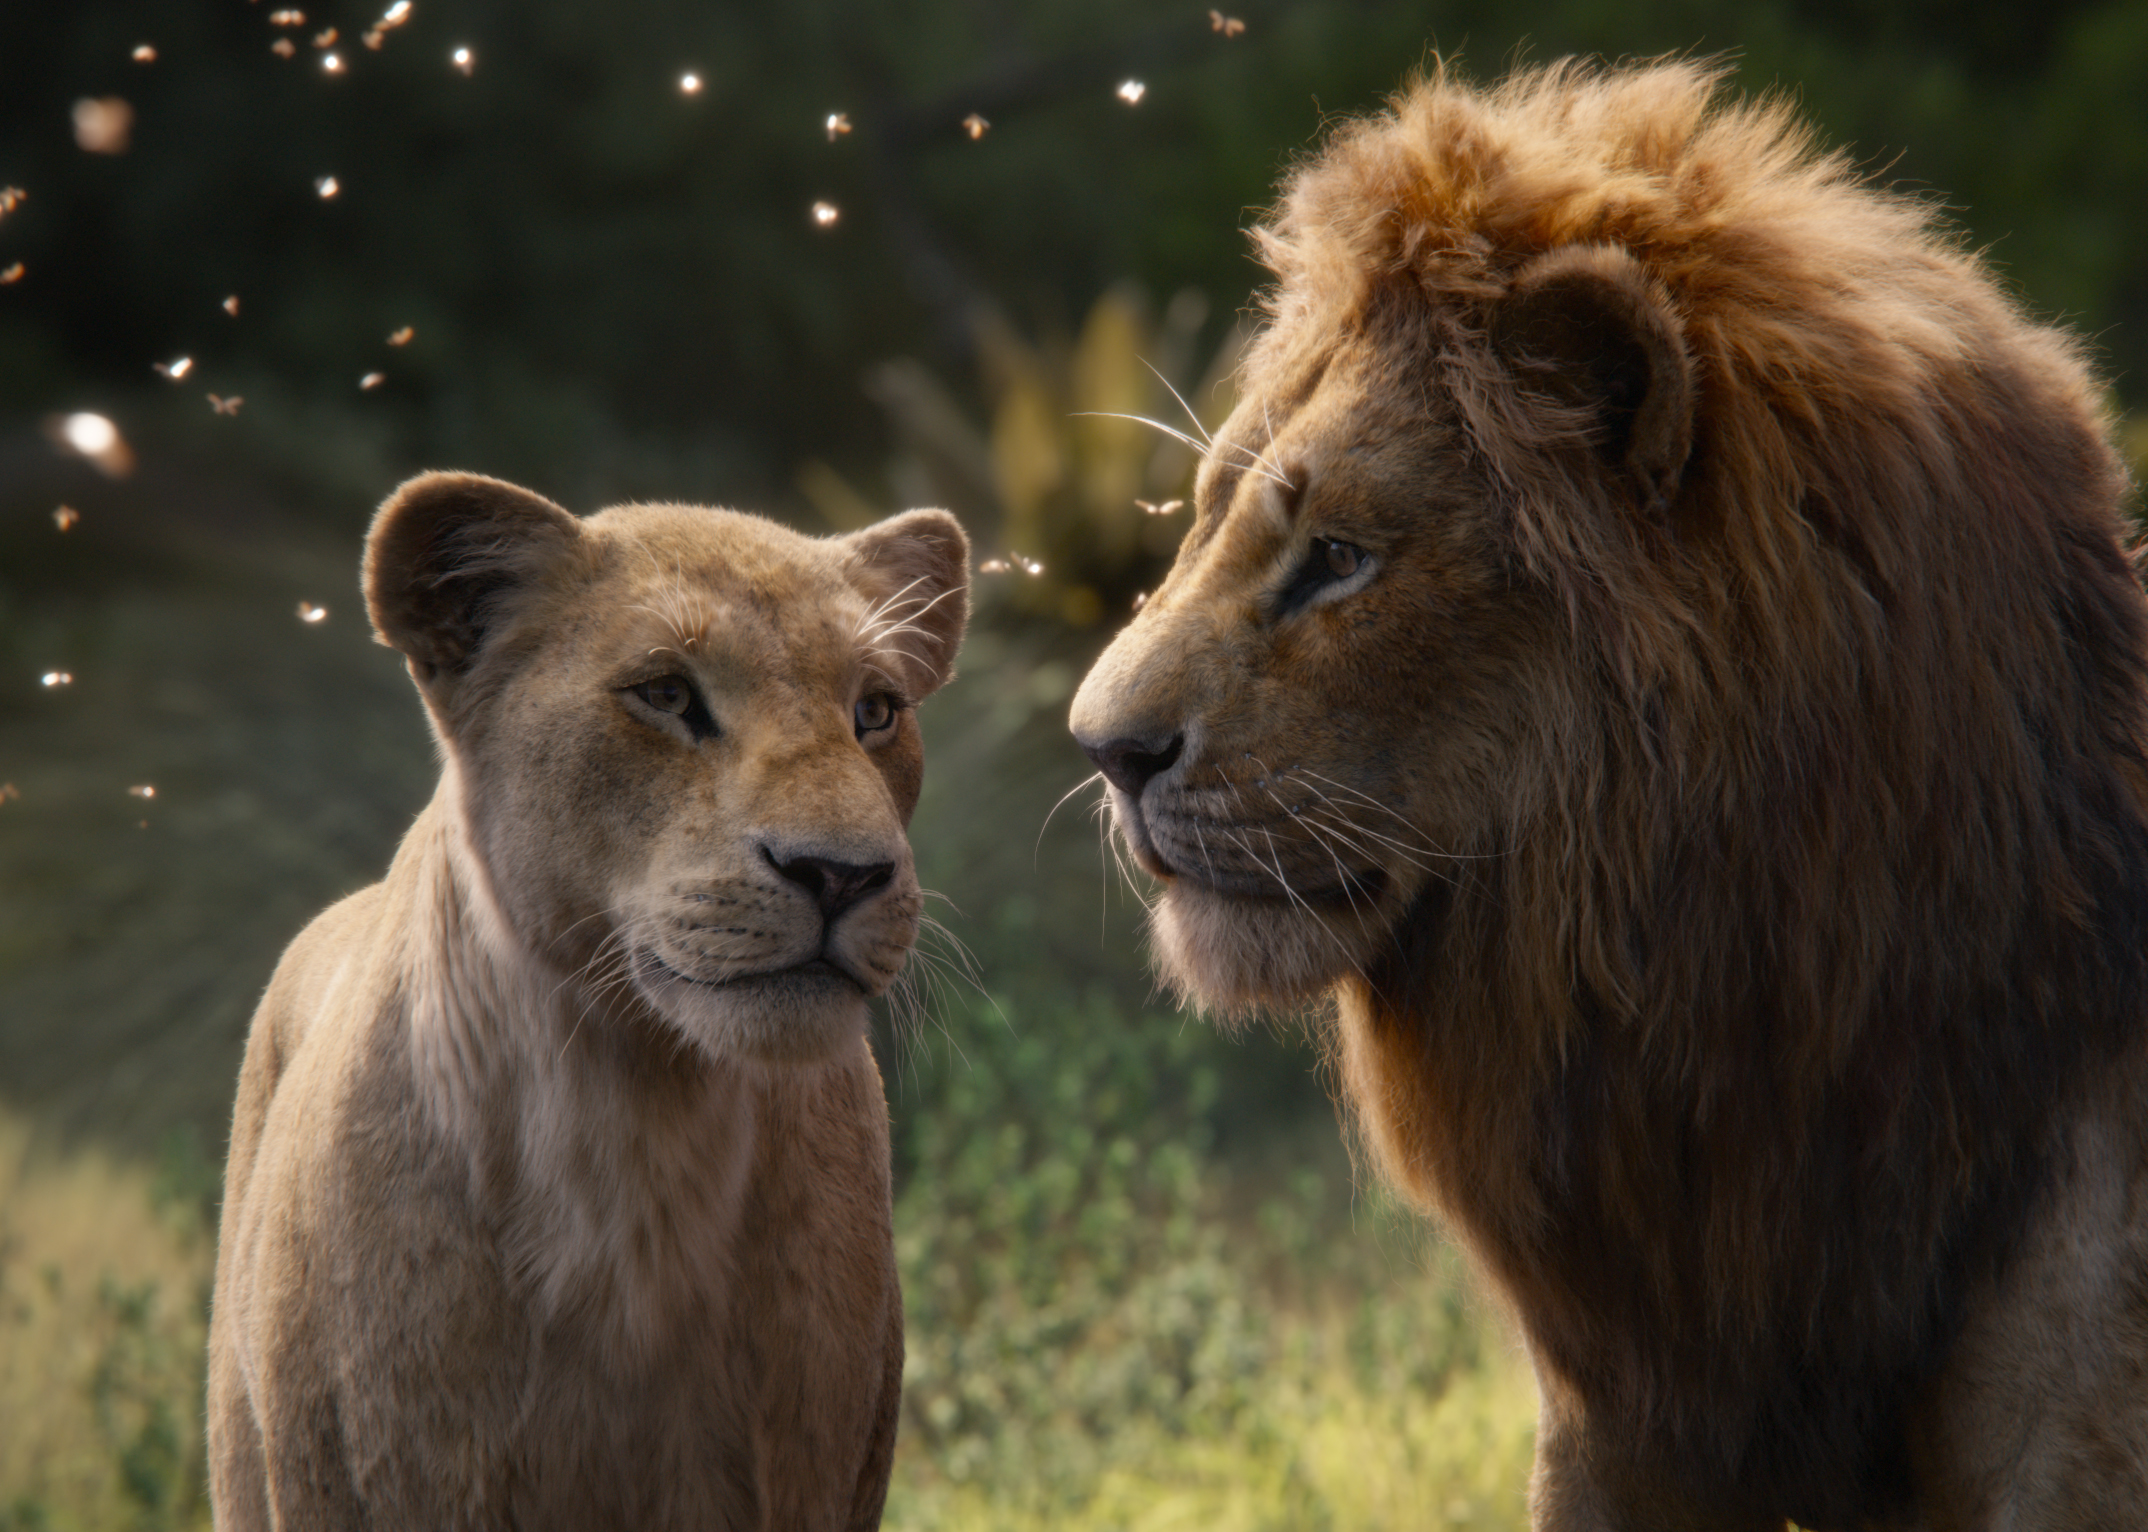 """THE LION KING - Featuring the voices of Beyoncé Knowles-Carter as Nala and Donald Glover as Simba, Disney's """"The Lion King"""" is directed by Jon Favreau. In theaters July 19, 2019. © 2019 Disney Enterprises, Inc. All Rights Reserved."""